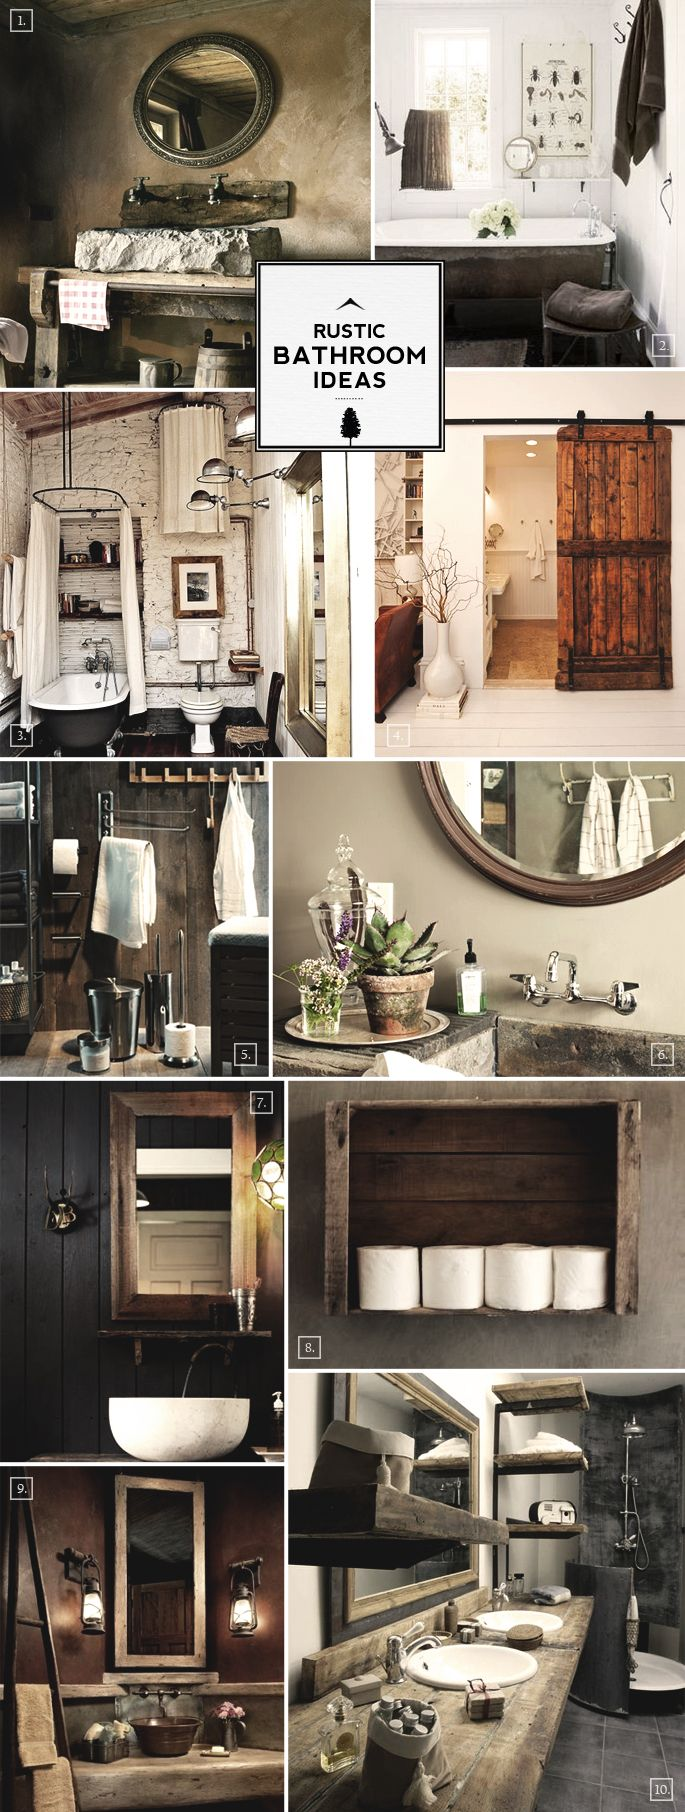 rustic bathroom ideas and decor tips badideen. Black Bedroom Furniture Sets. Home Design Ideas